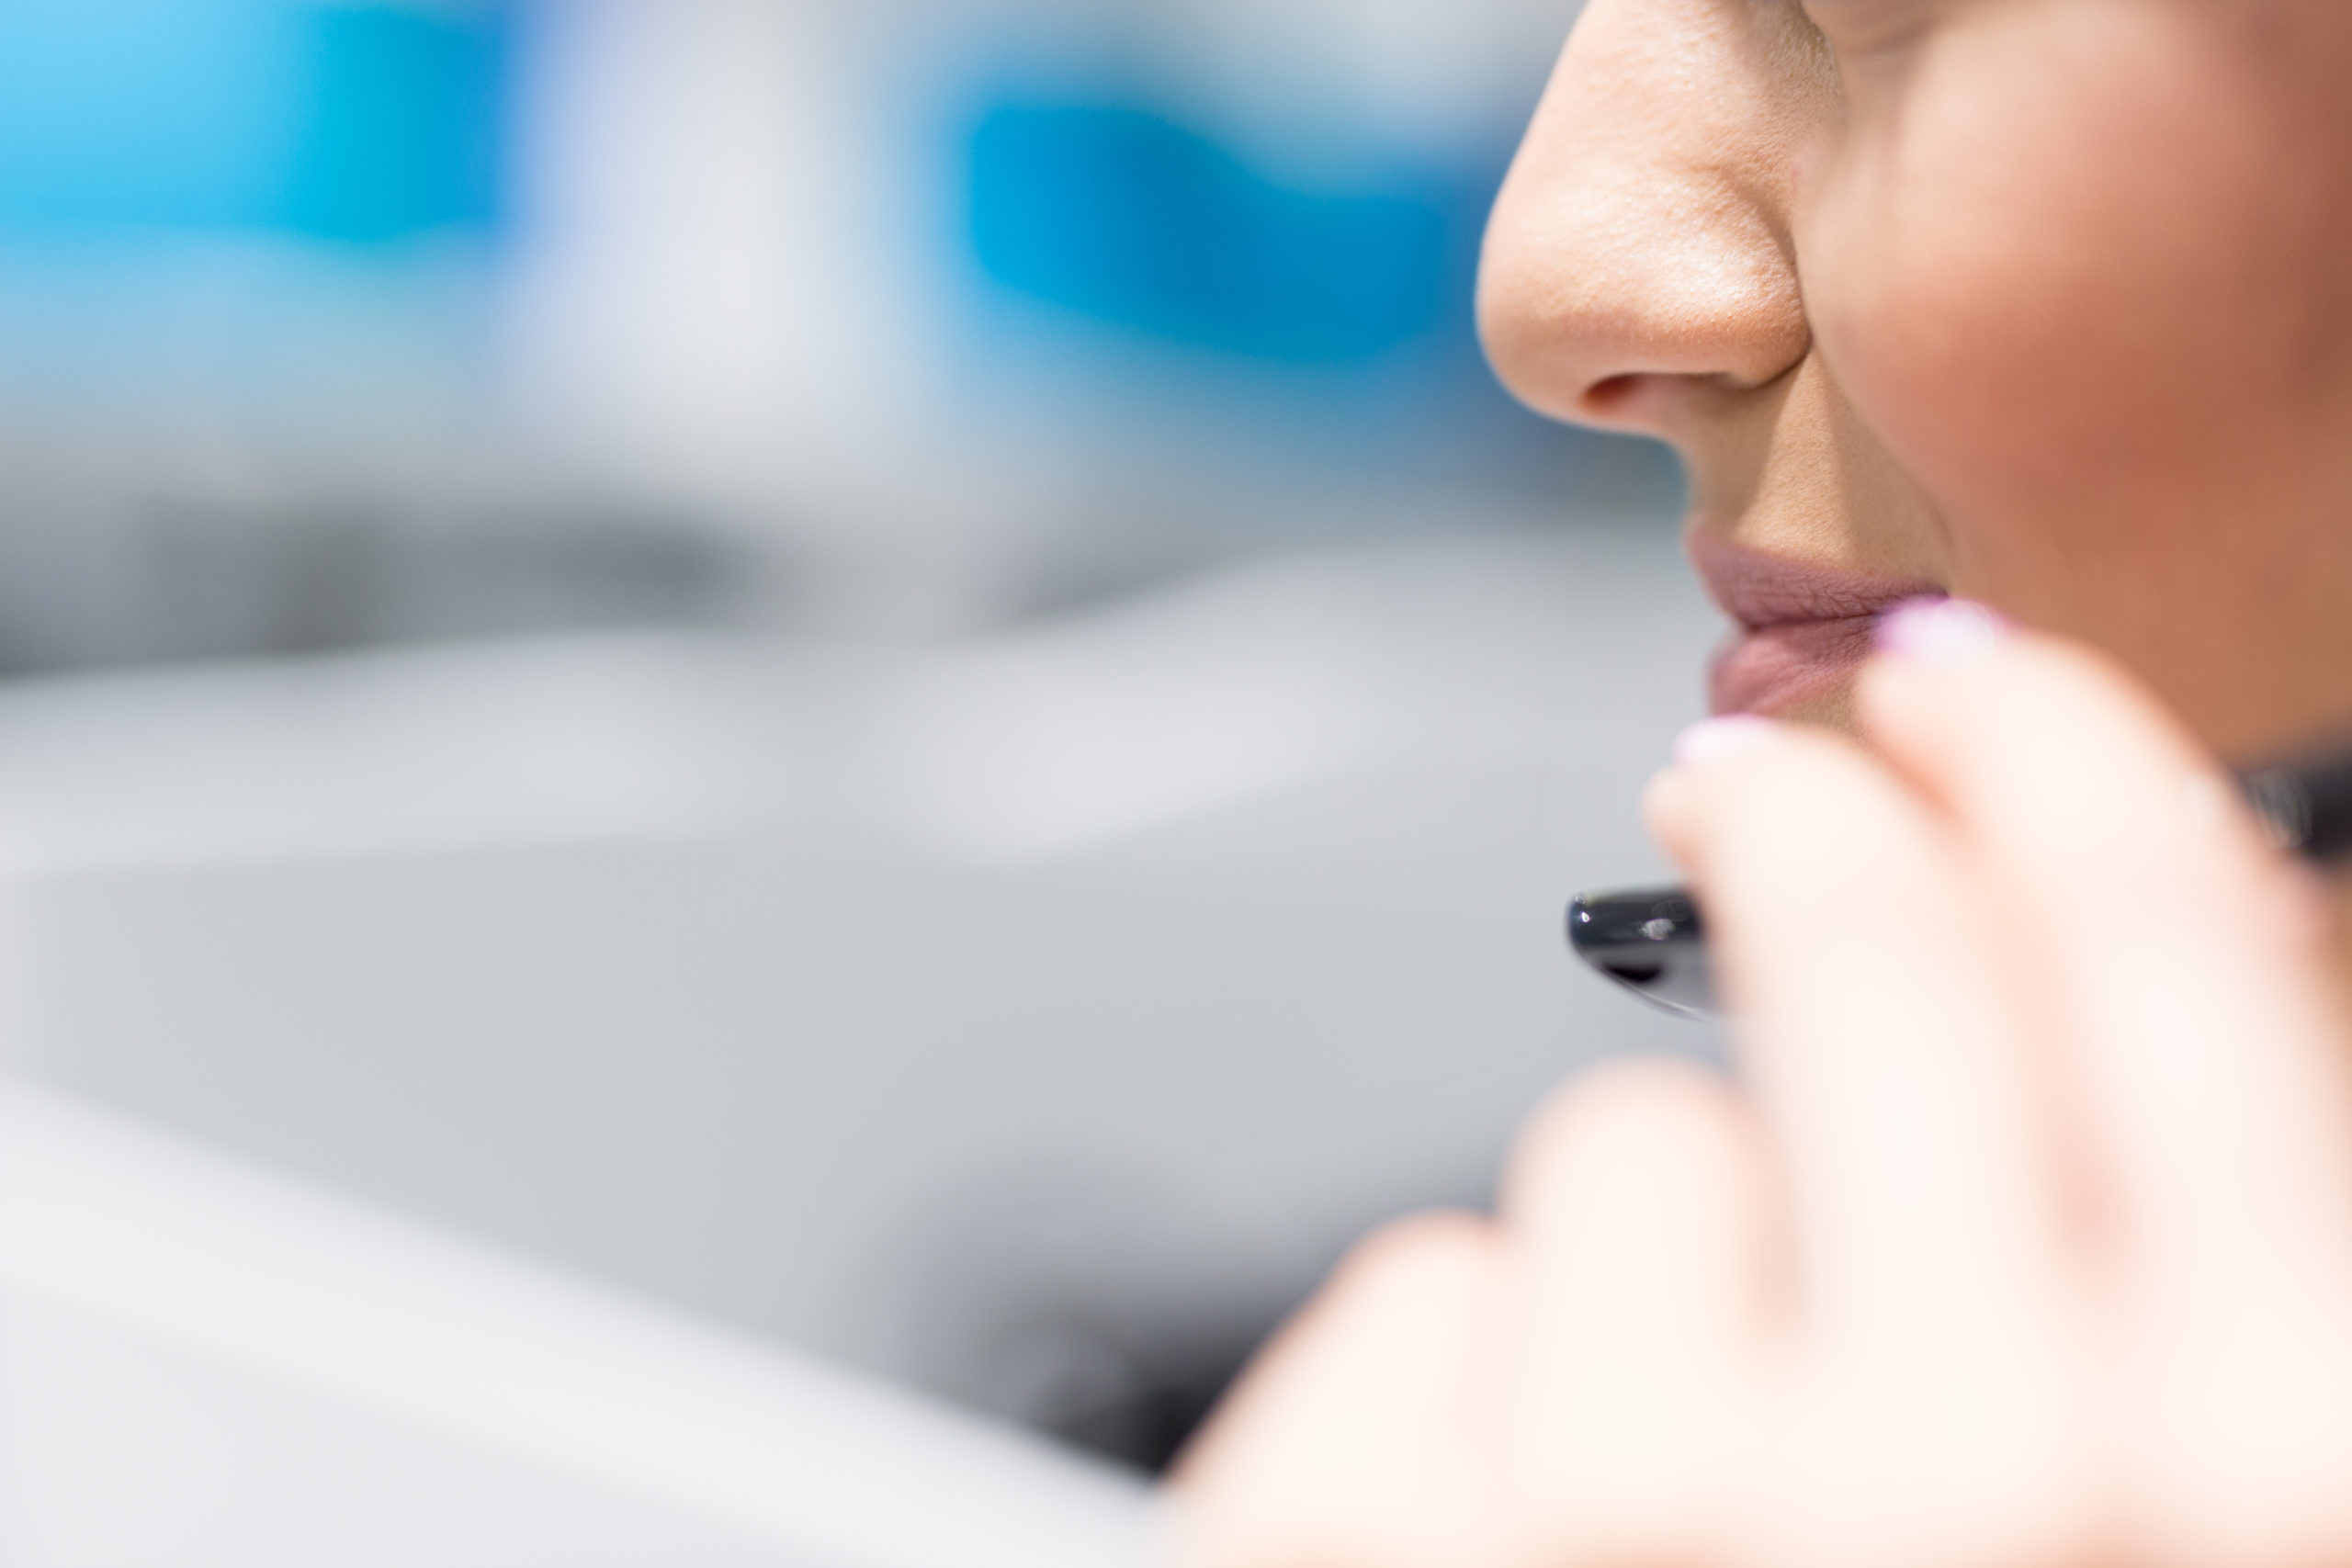 Voice Quality Matters: Quarter of Employees Working From Home Still Experiencing Regular Connectivity Issues 38